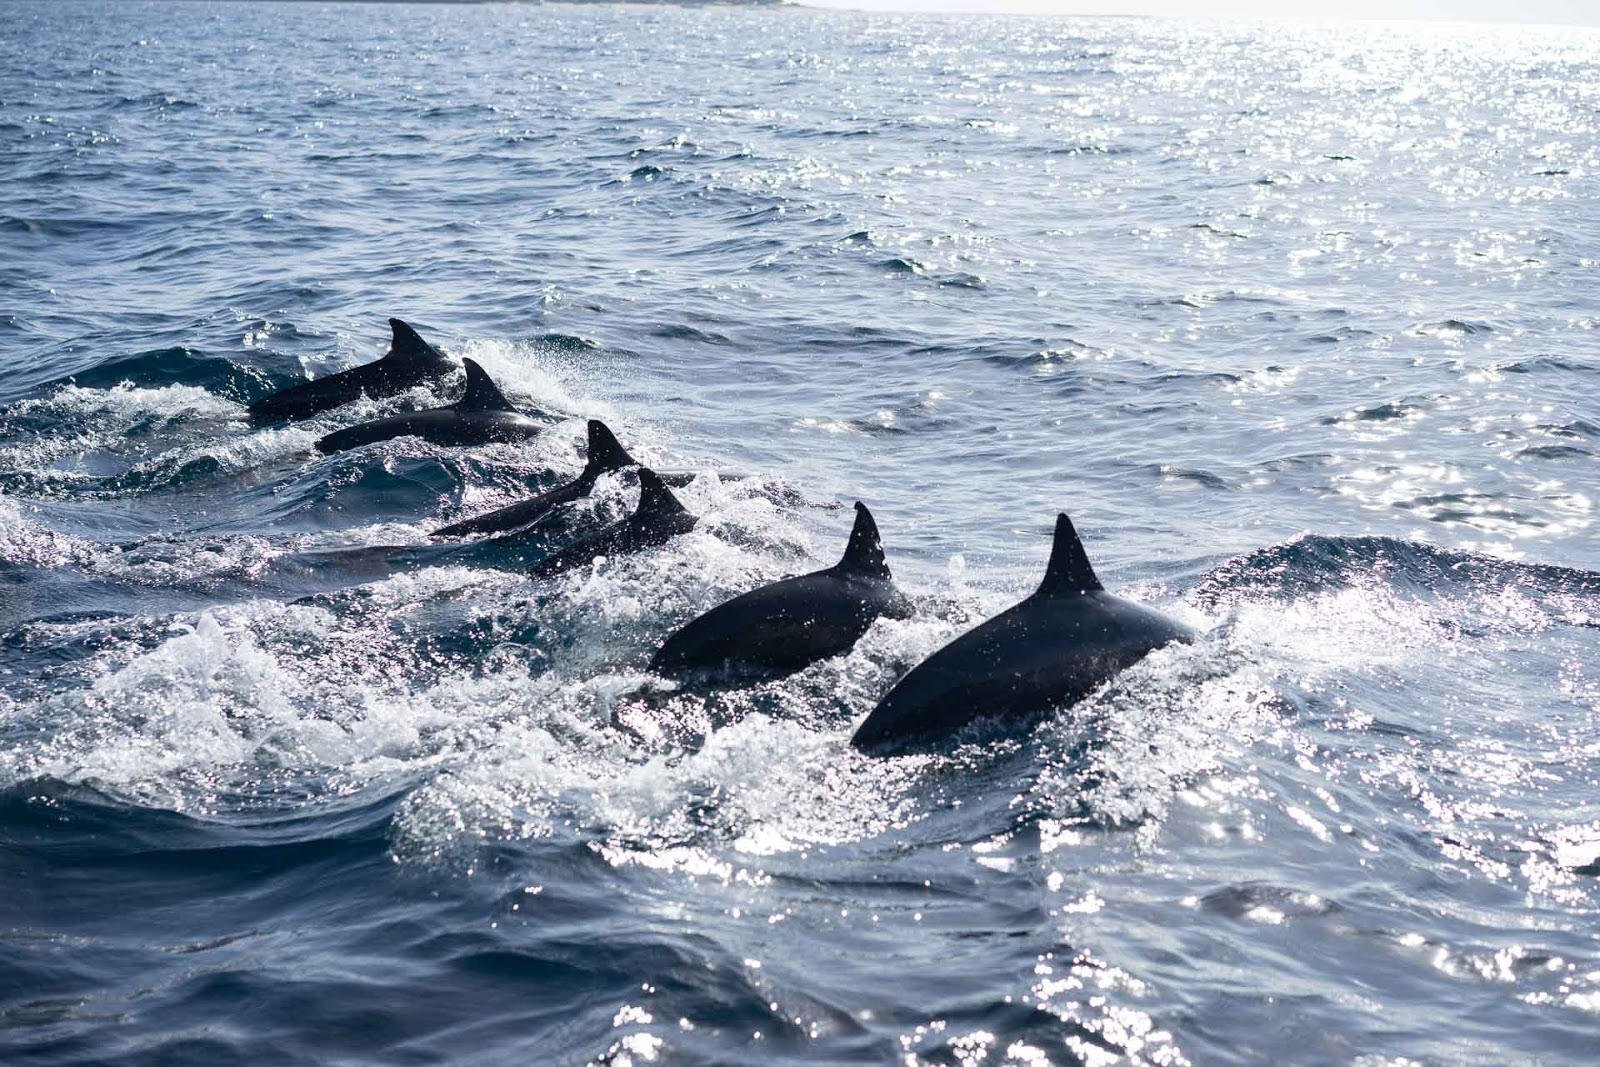 A family of dolphins swimming together.